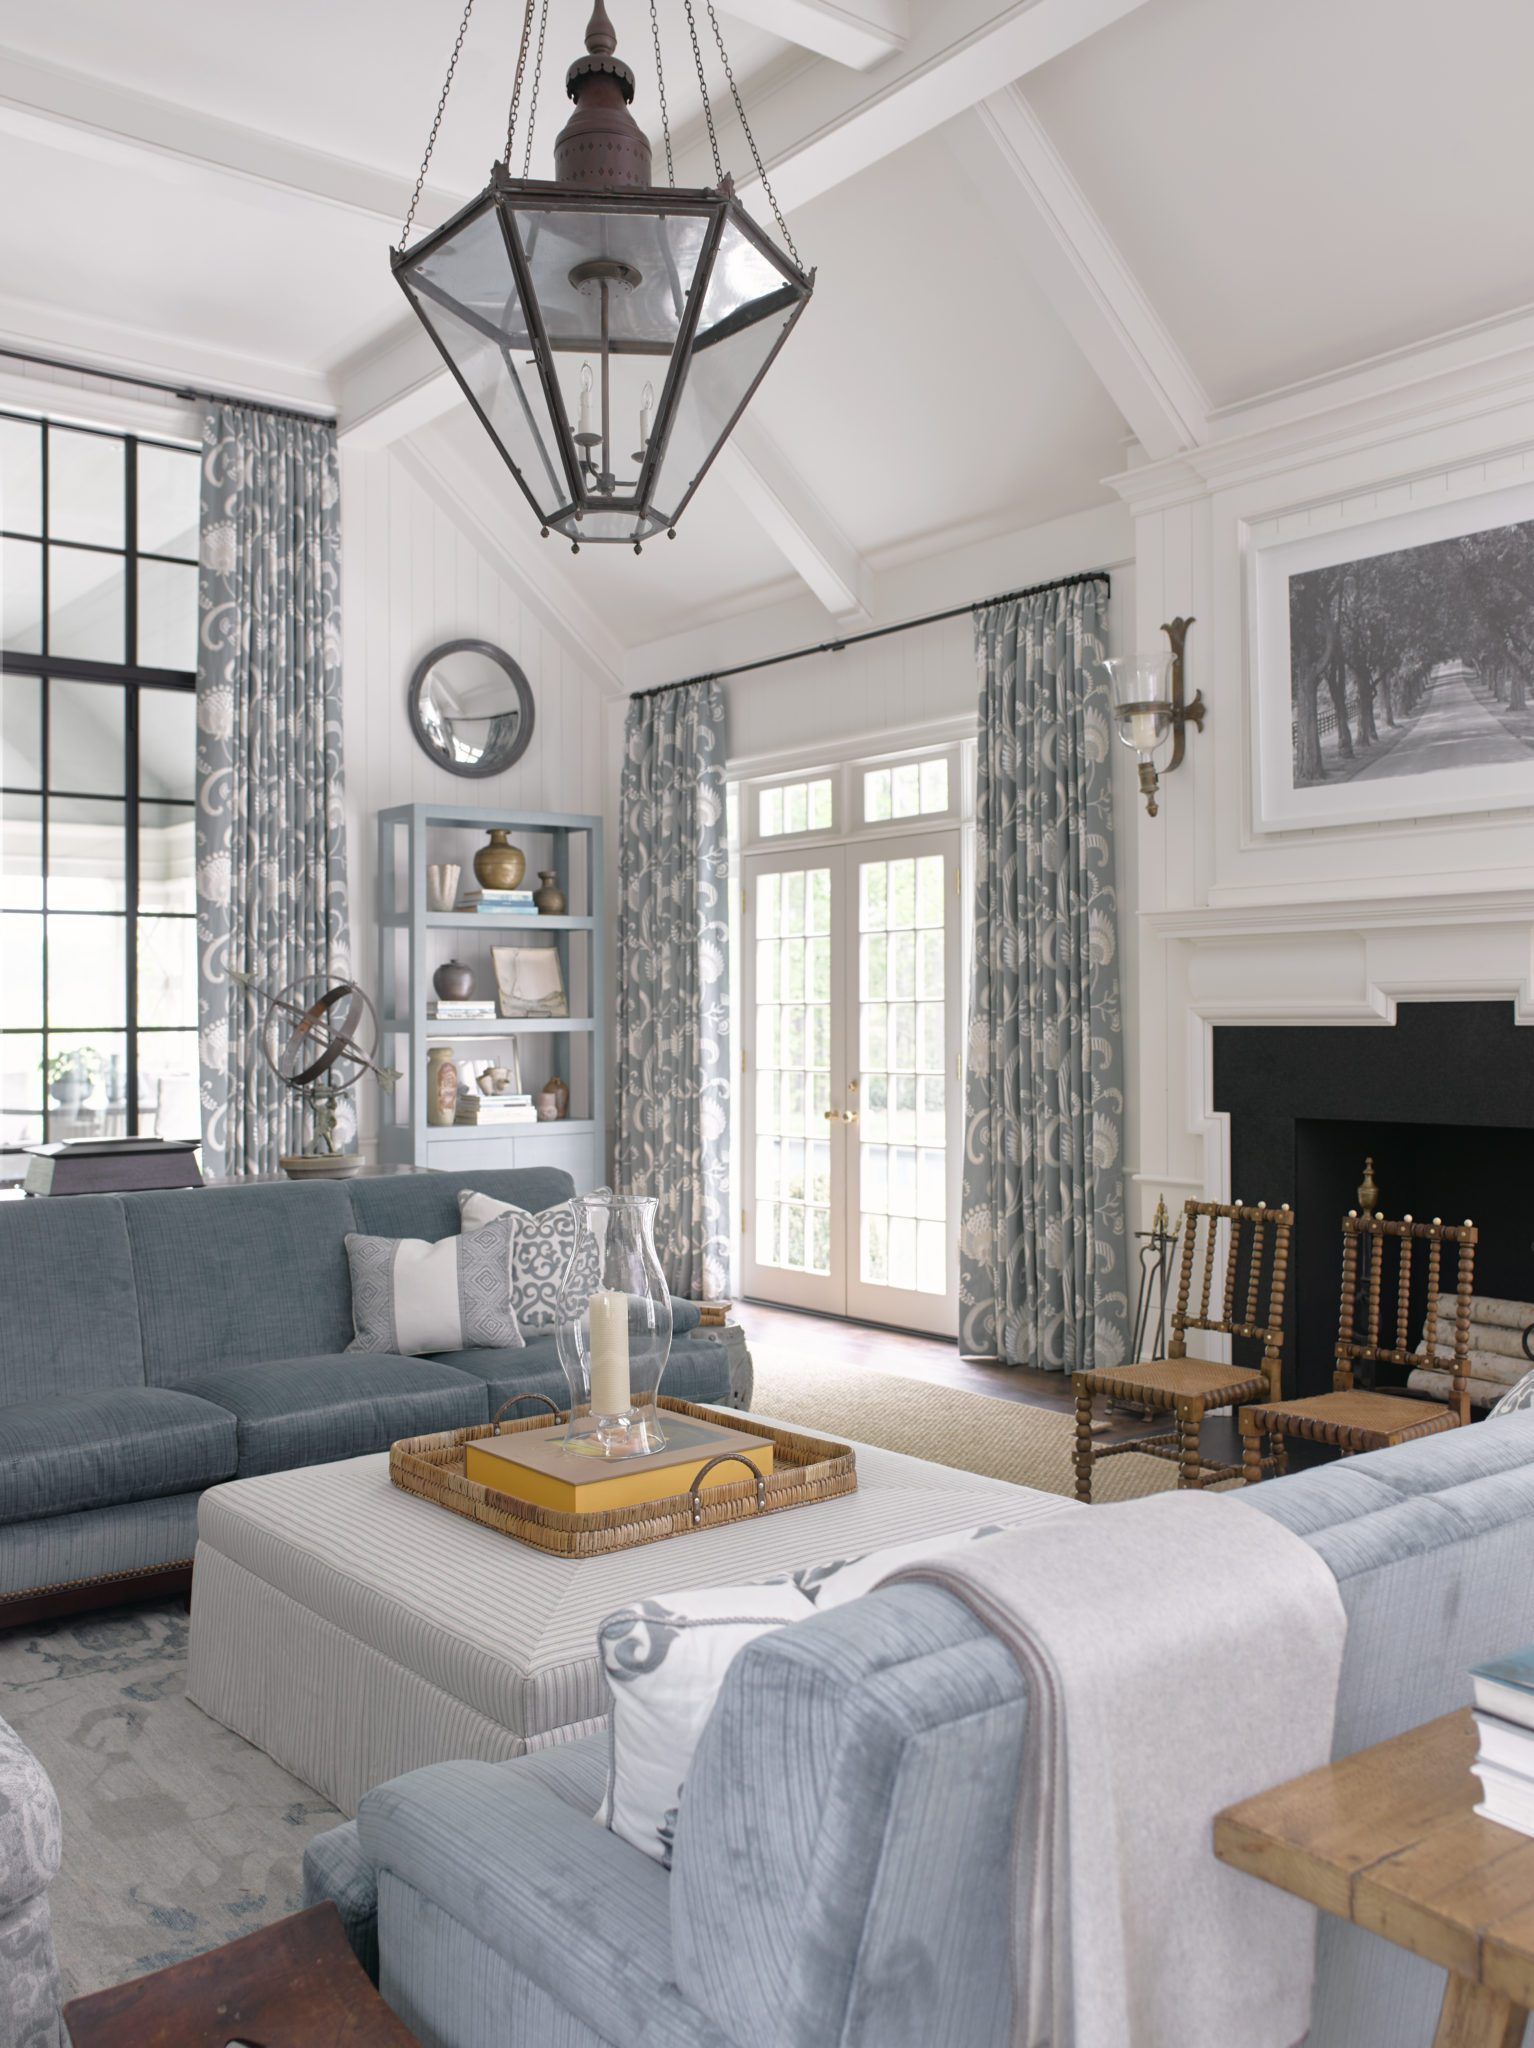 10 southern decor favorites from the southeastern designer showhouse